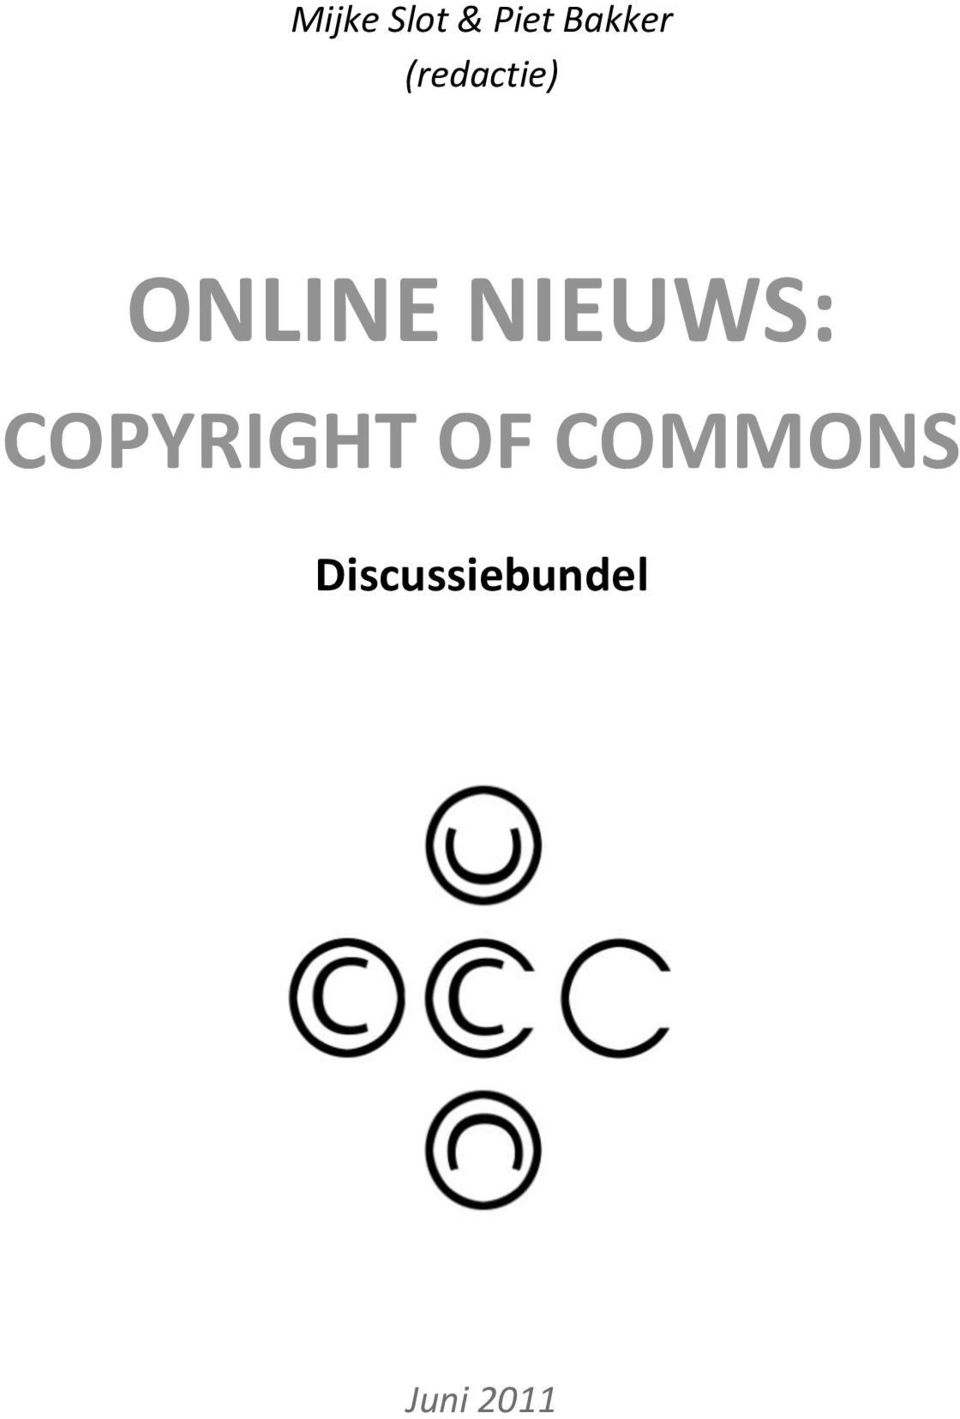 NIEUWS: COPYRIGHT OF